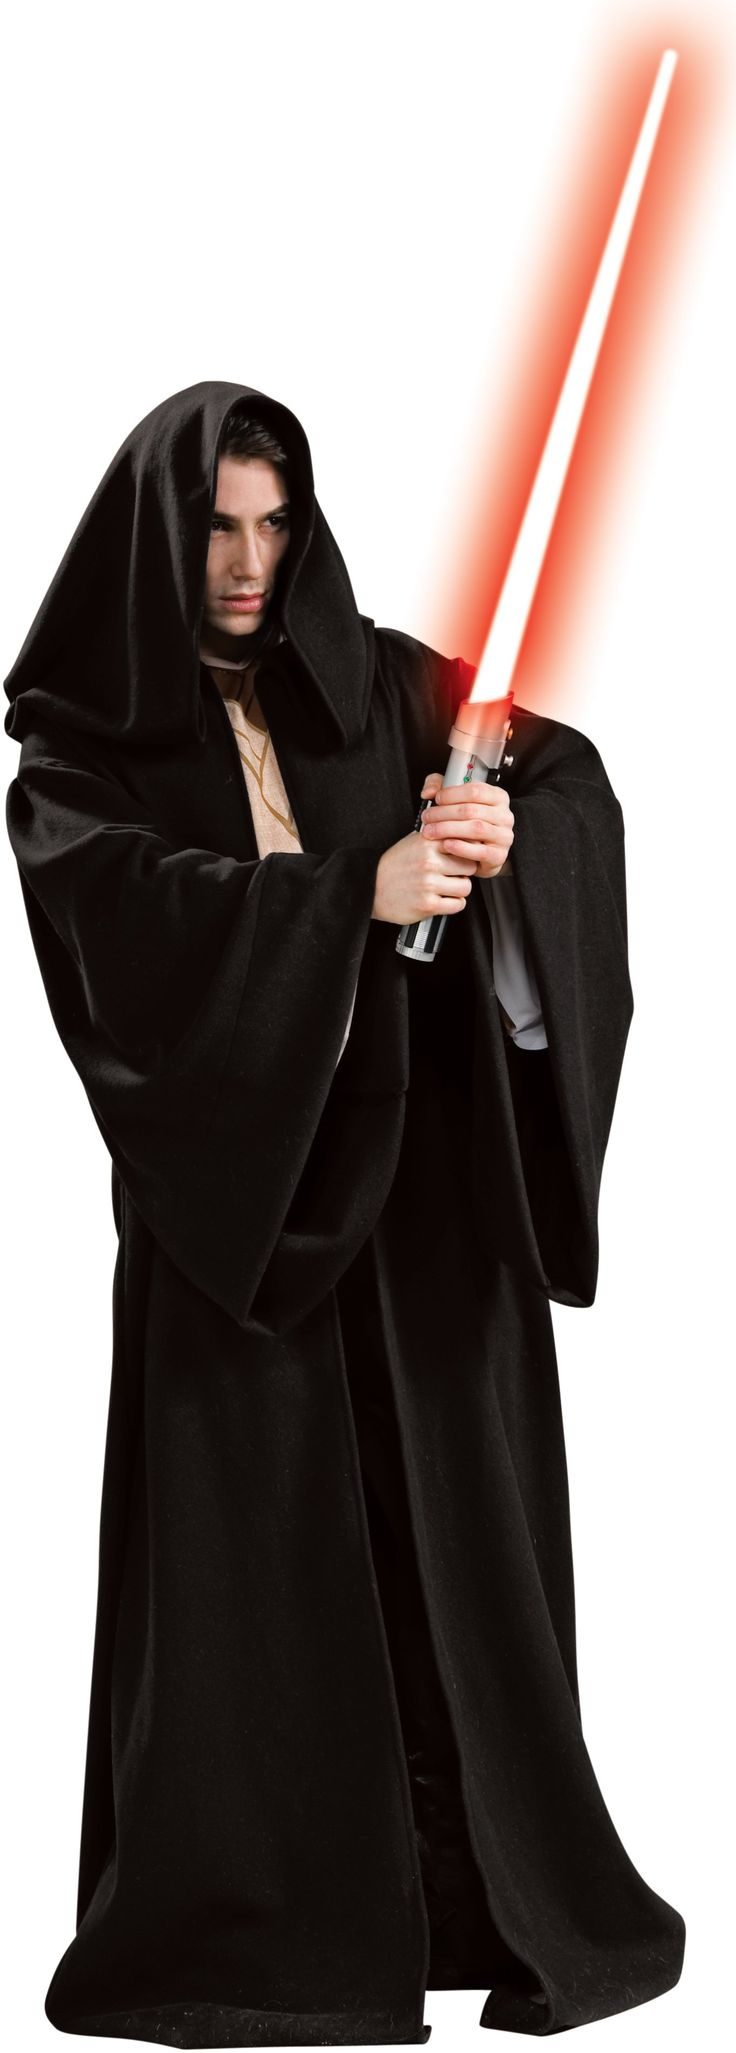 Star Wars Deluxe Sith Robe Adult Costume from BuyCostumes.com